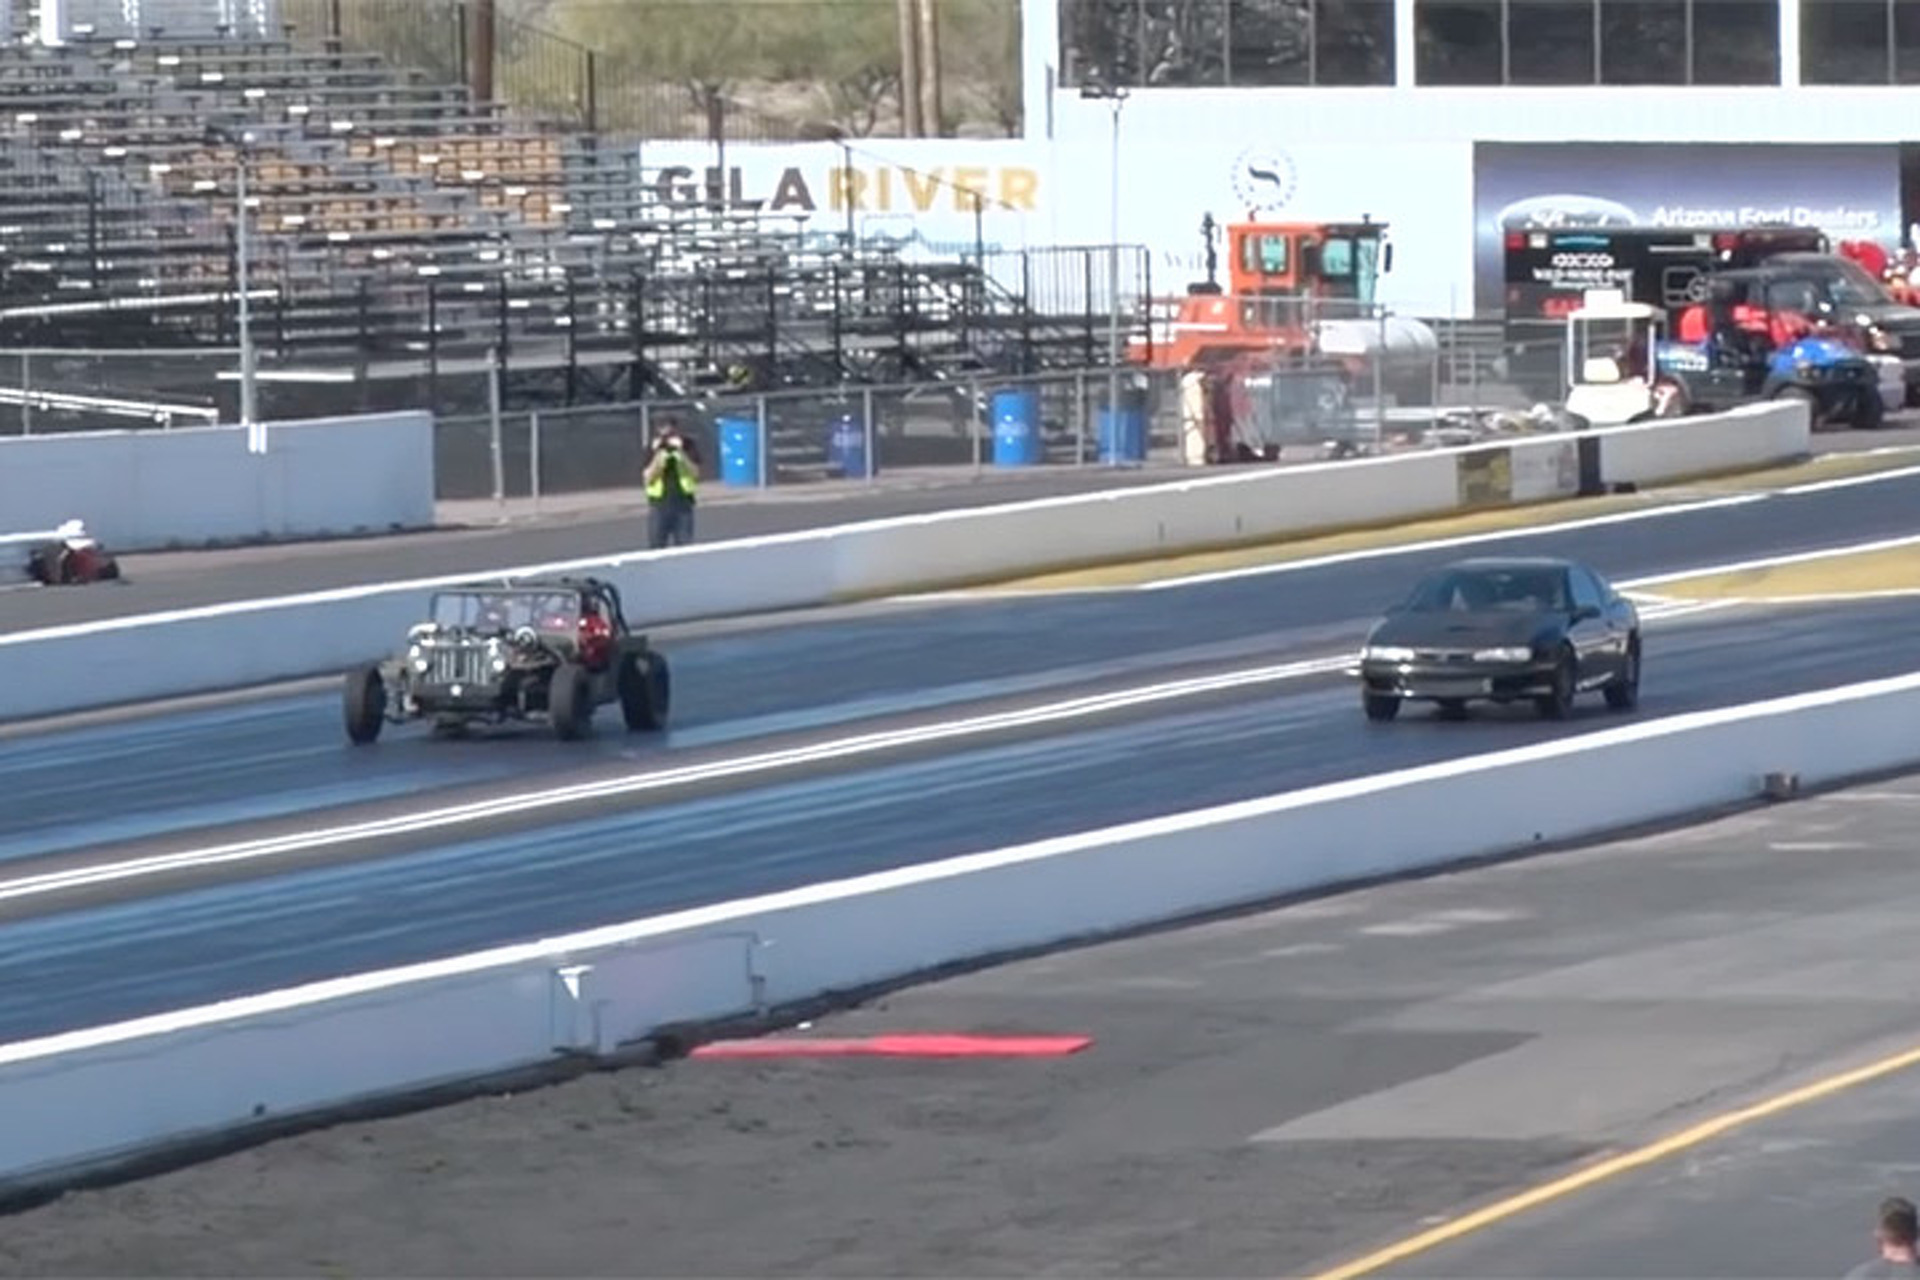 Watch a Twin-Turbo Willys Jeep Unleash at the Drag Strip